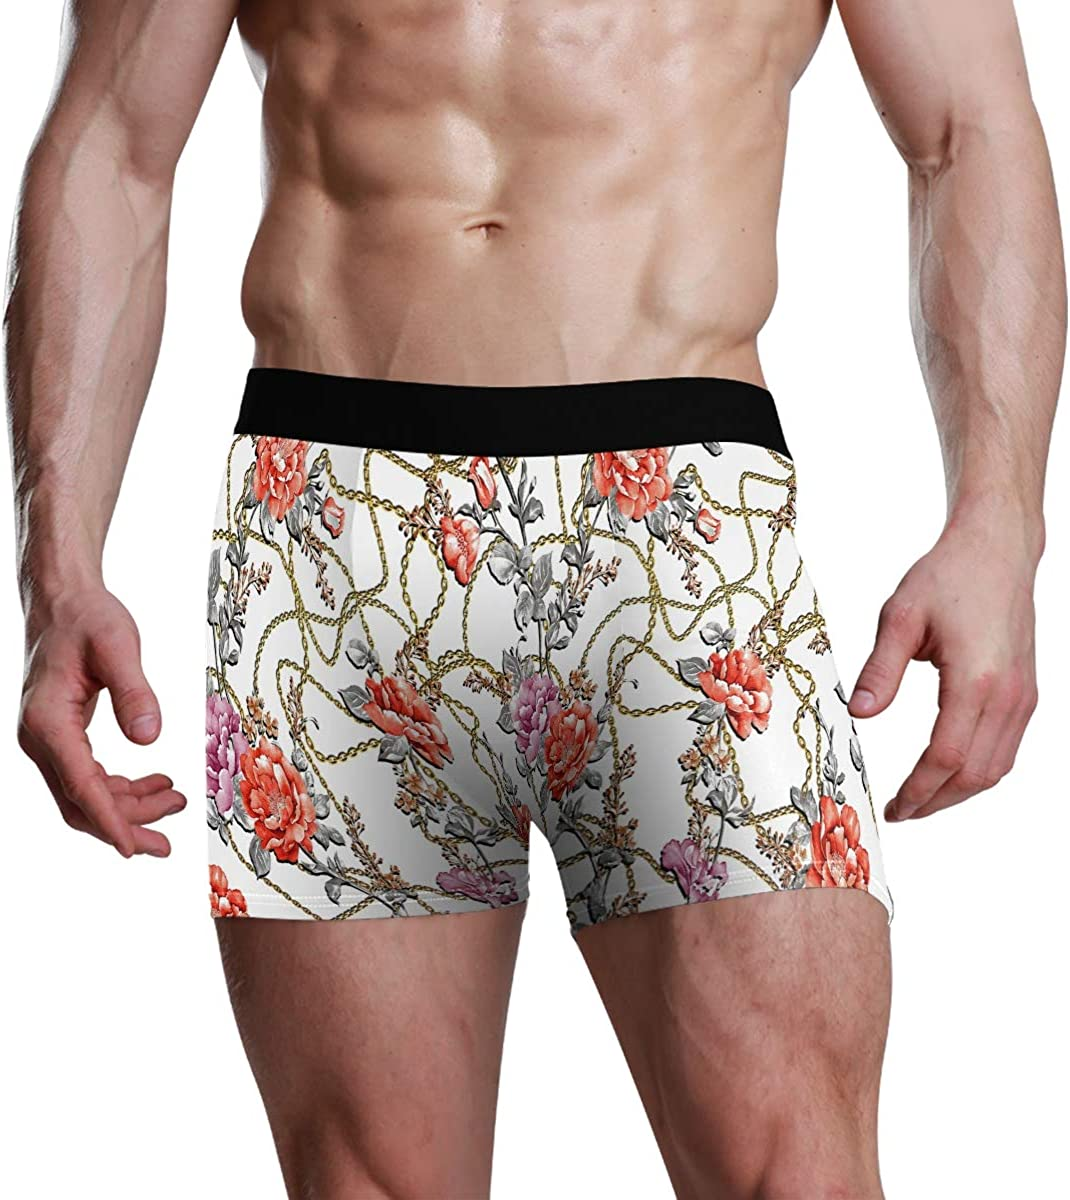 Mens Underwear Boxers Flowers Peony Rose Leaf Drawing Chain Gold Elegance Pattern ComfortSoft Boxer Briefs Breathable Bikini